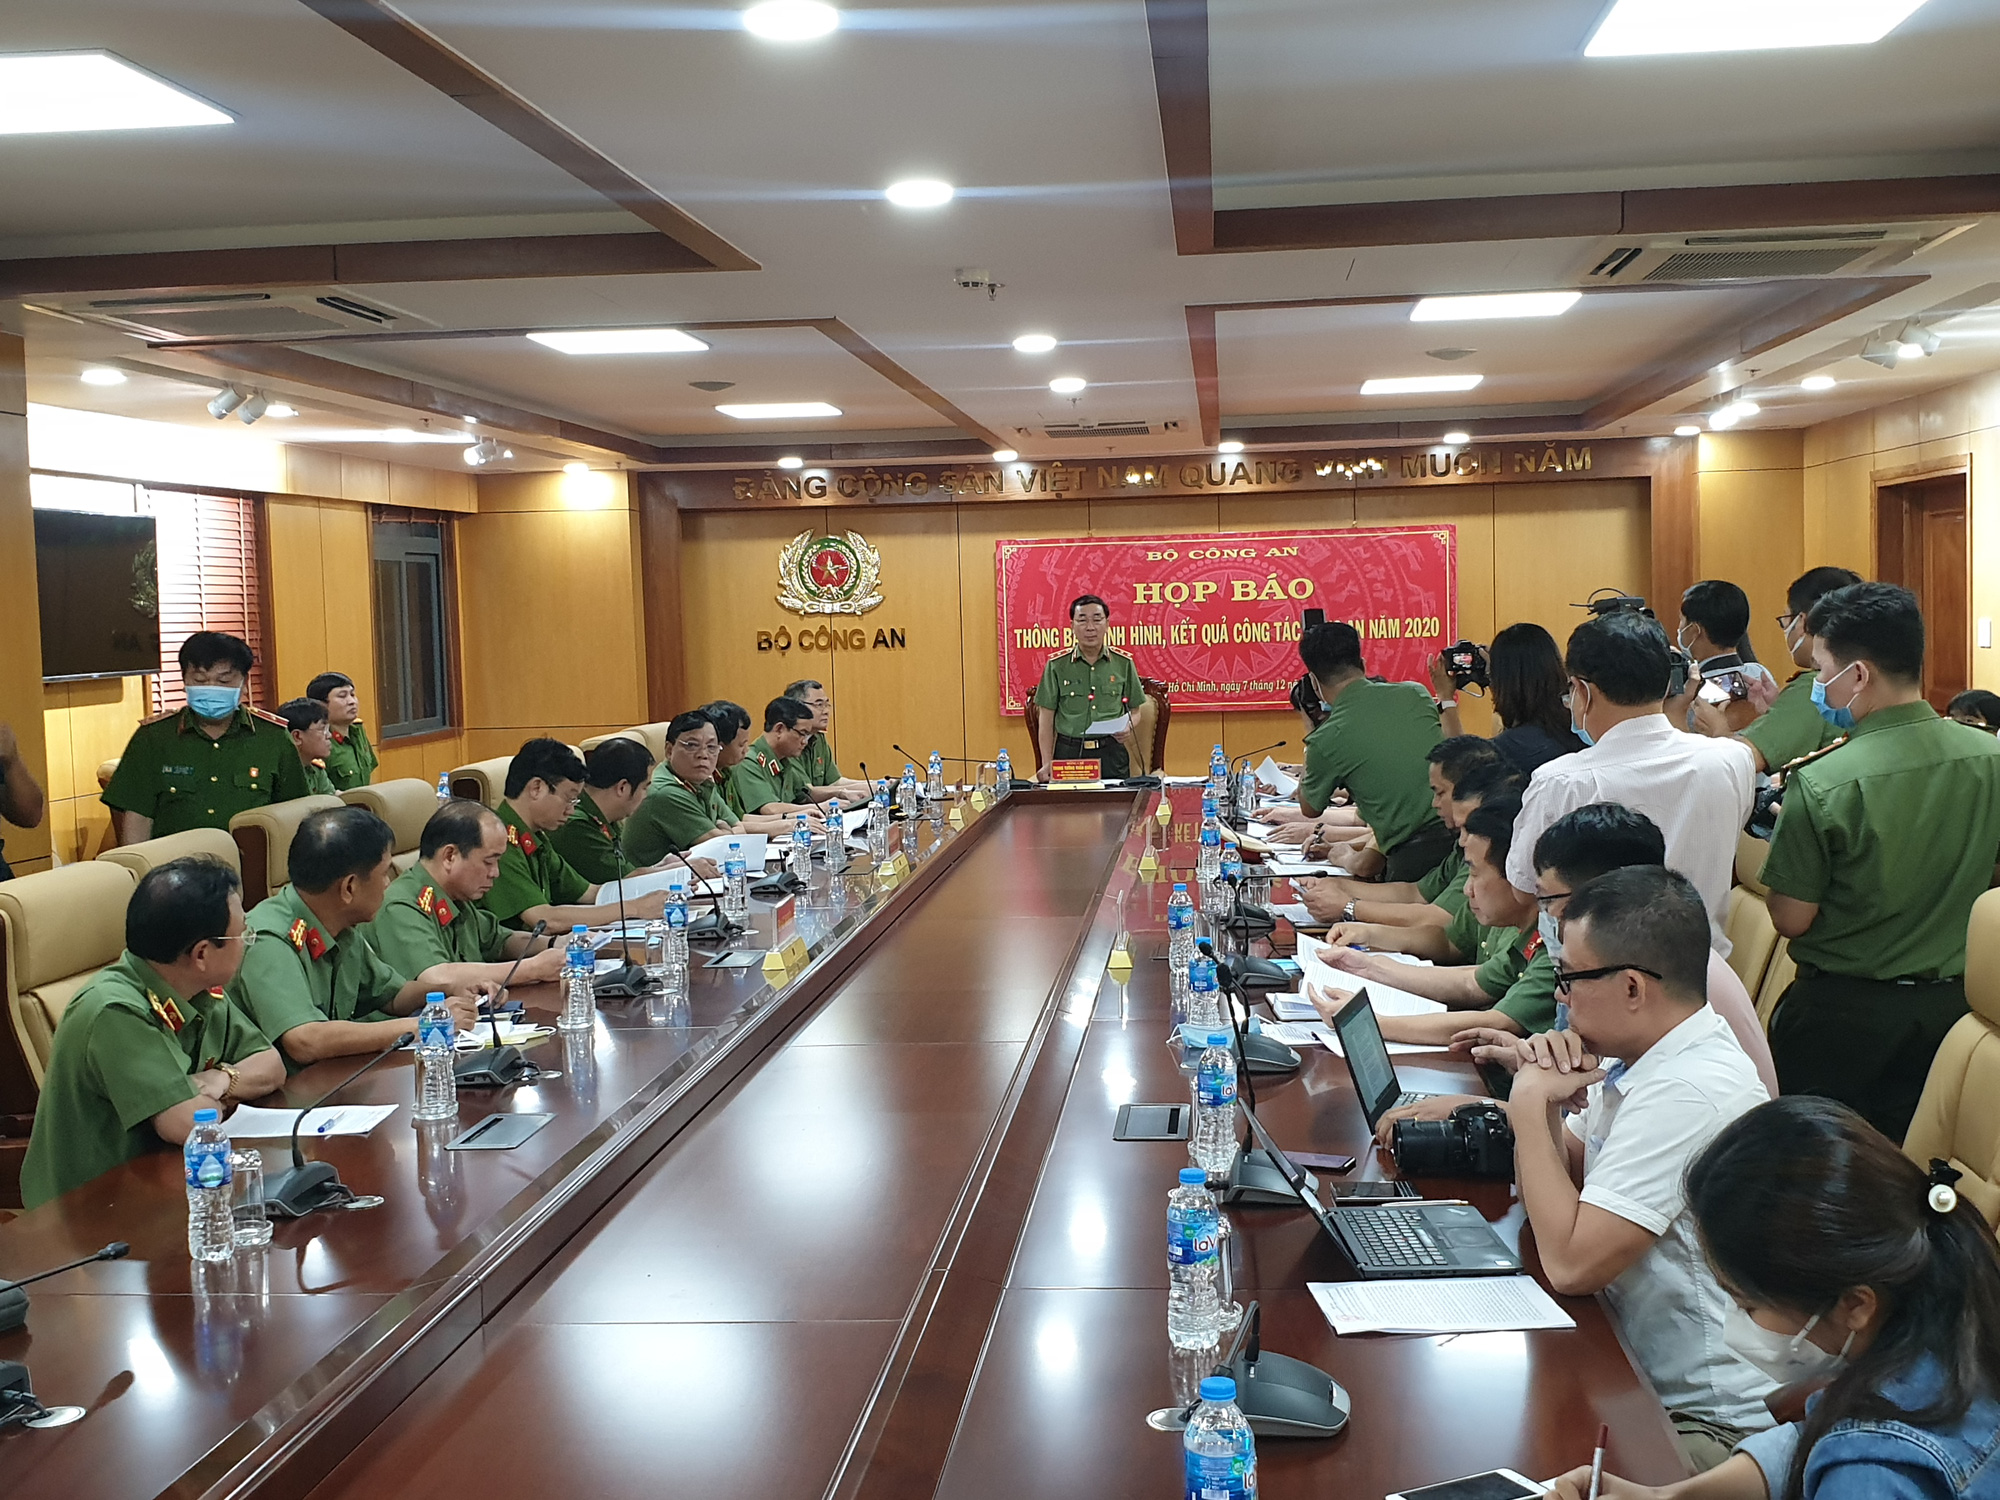 8 officers arrested for taking bribes, freeing drug dealers in Ho Chi Minh City